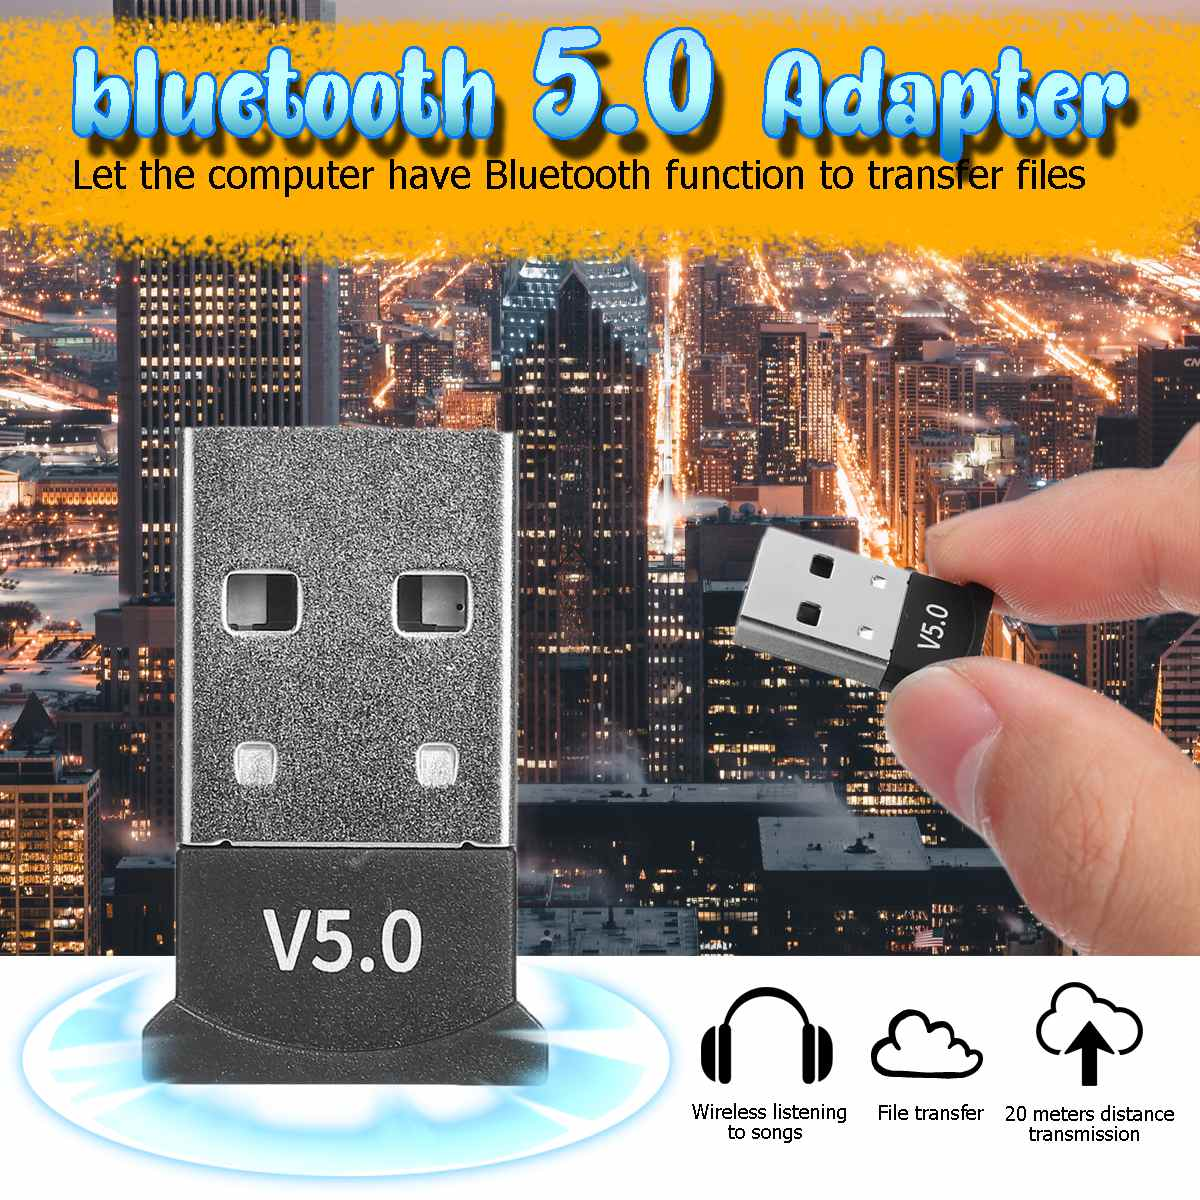 <font><b>bluetooth</b></font> <font><b>5.0</b></font> <font><b>USB</b></font> Adapter for Window 7/8/10 for Vista XP for Mac OS X PC Keyboard Mouse Gamepads Speakers image